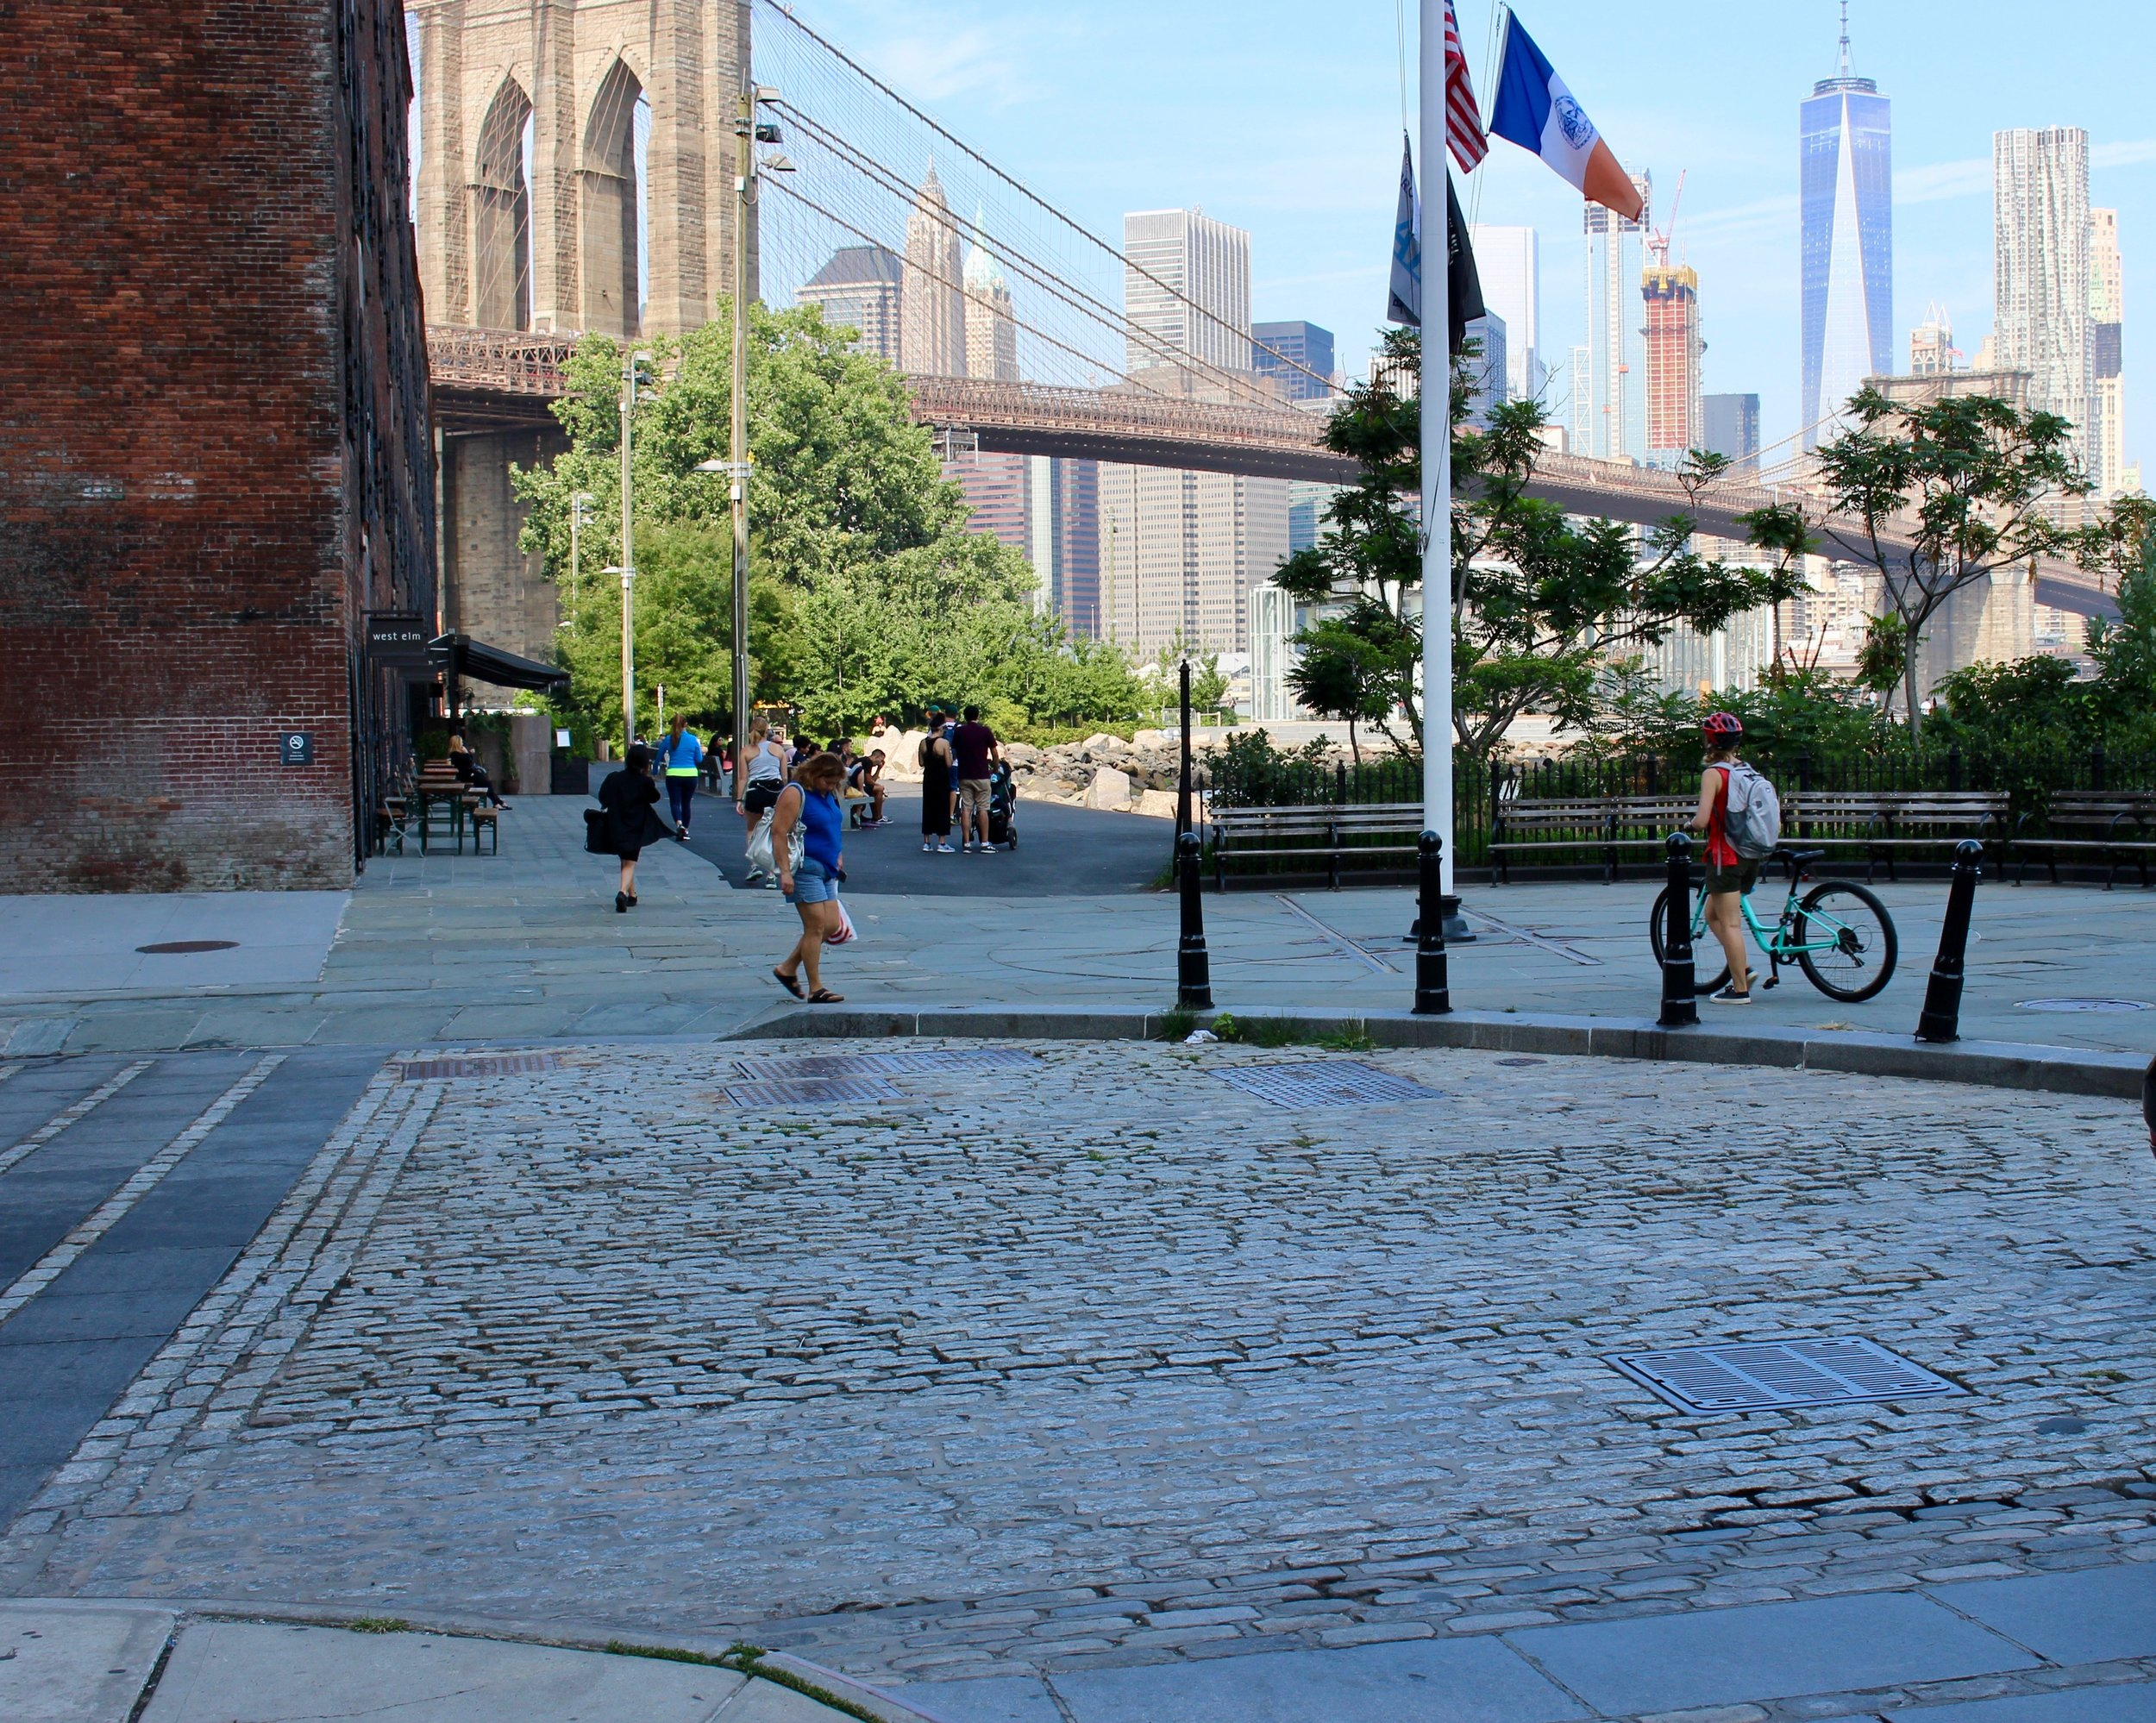 The view from the cobblestone cul-de-sac at Main Street. It's a beautiful, serene spot, where you can continue through Brooklyn Bridge Park. This view is looking south. Note the Brooklyn Bridge and downtown NYC in all its glory. We're going to step out of the Park onto Main Street here to finish up our morning walk.